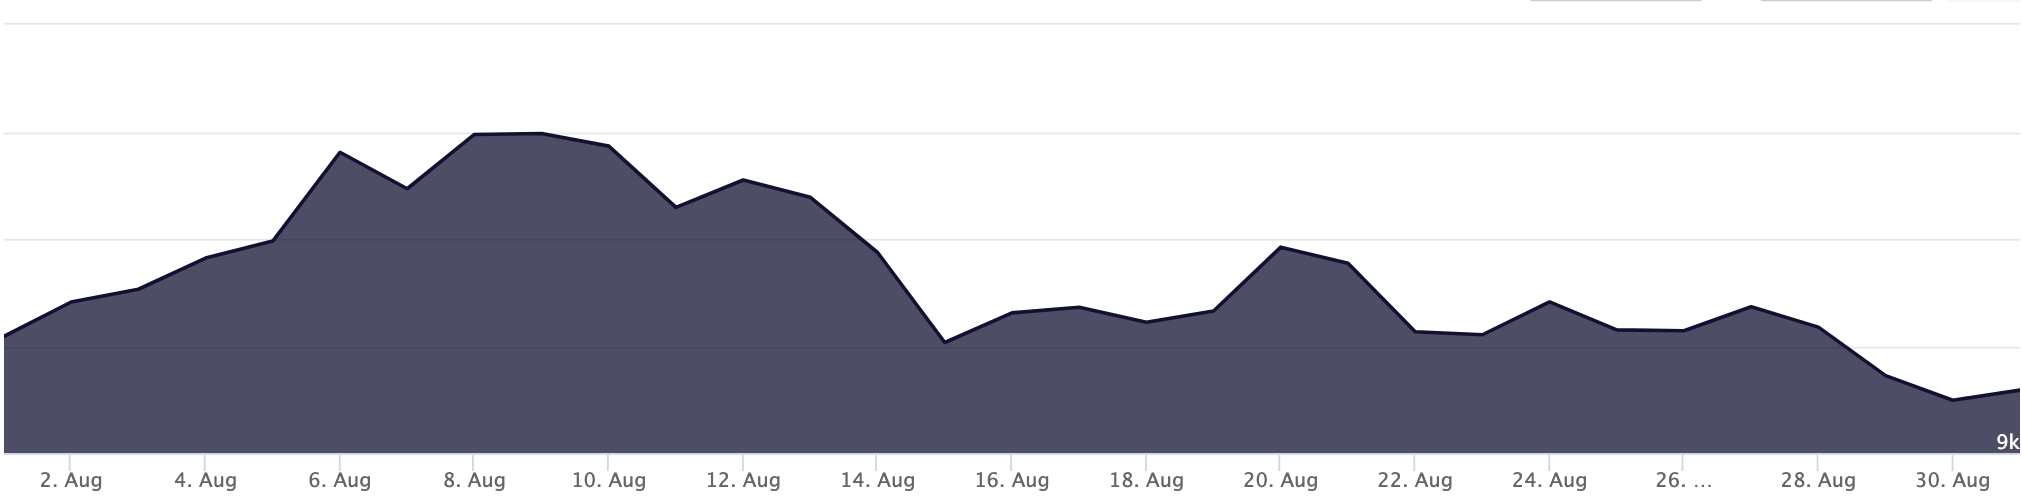 August 2019 Bitcoin Price